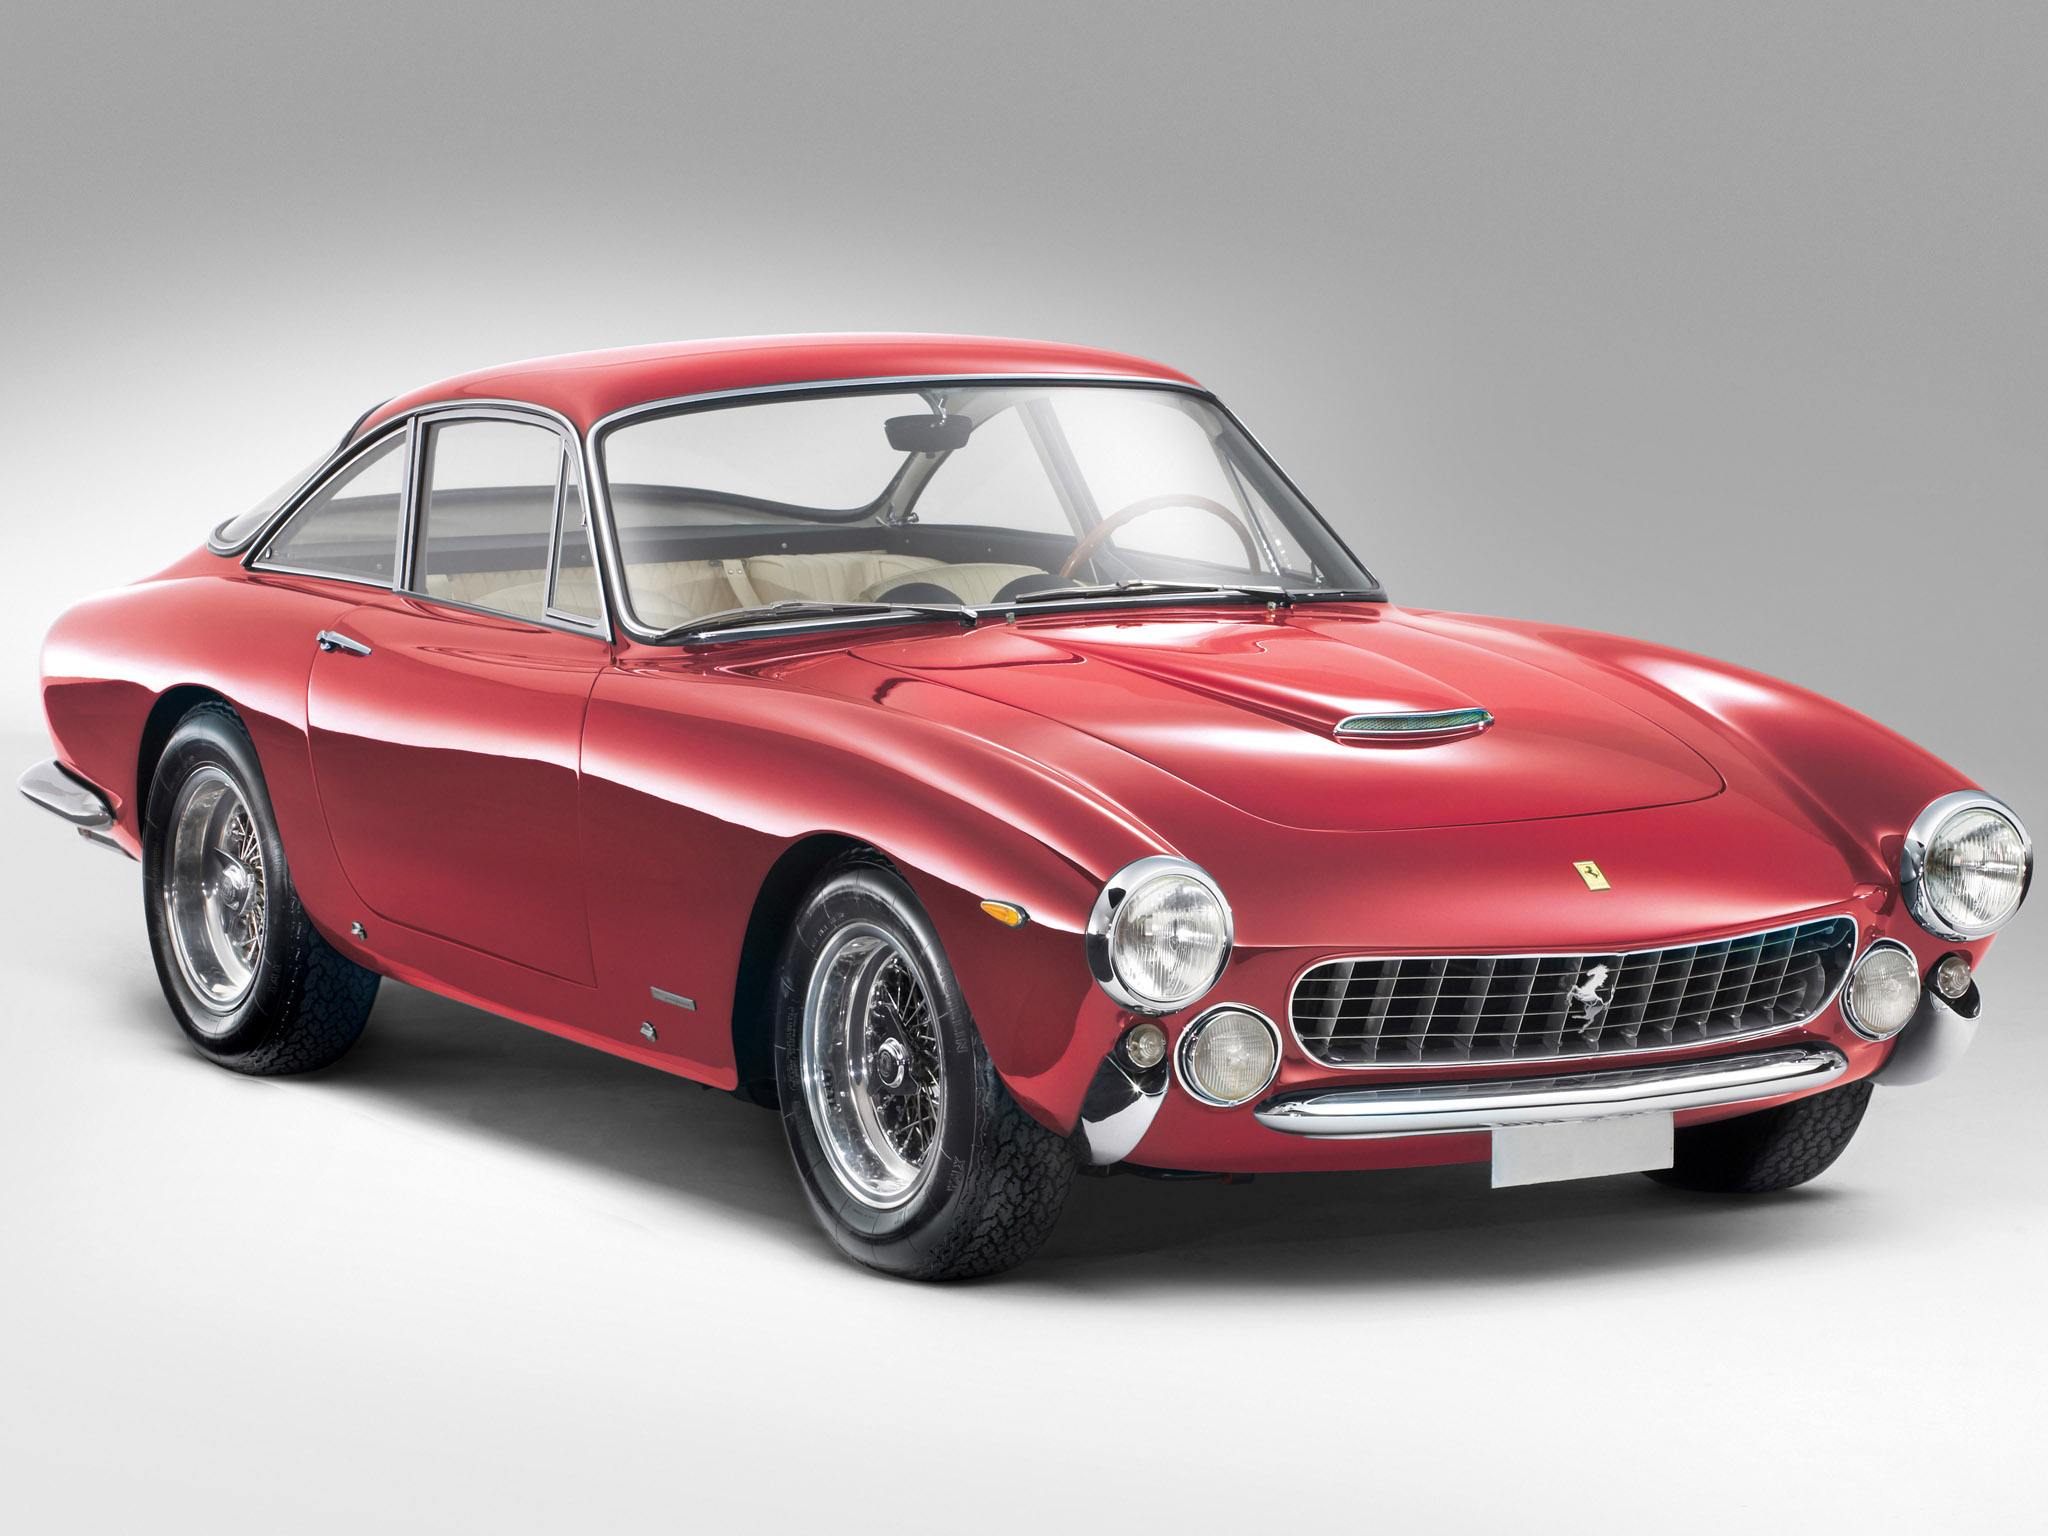 ferrari 250 gt lusso berlinetta pininfarina 1962 1964 ferrari 250 gt lusso berlinetta. Black Bedroom Furniture Sets. Home Design Ideas